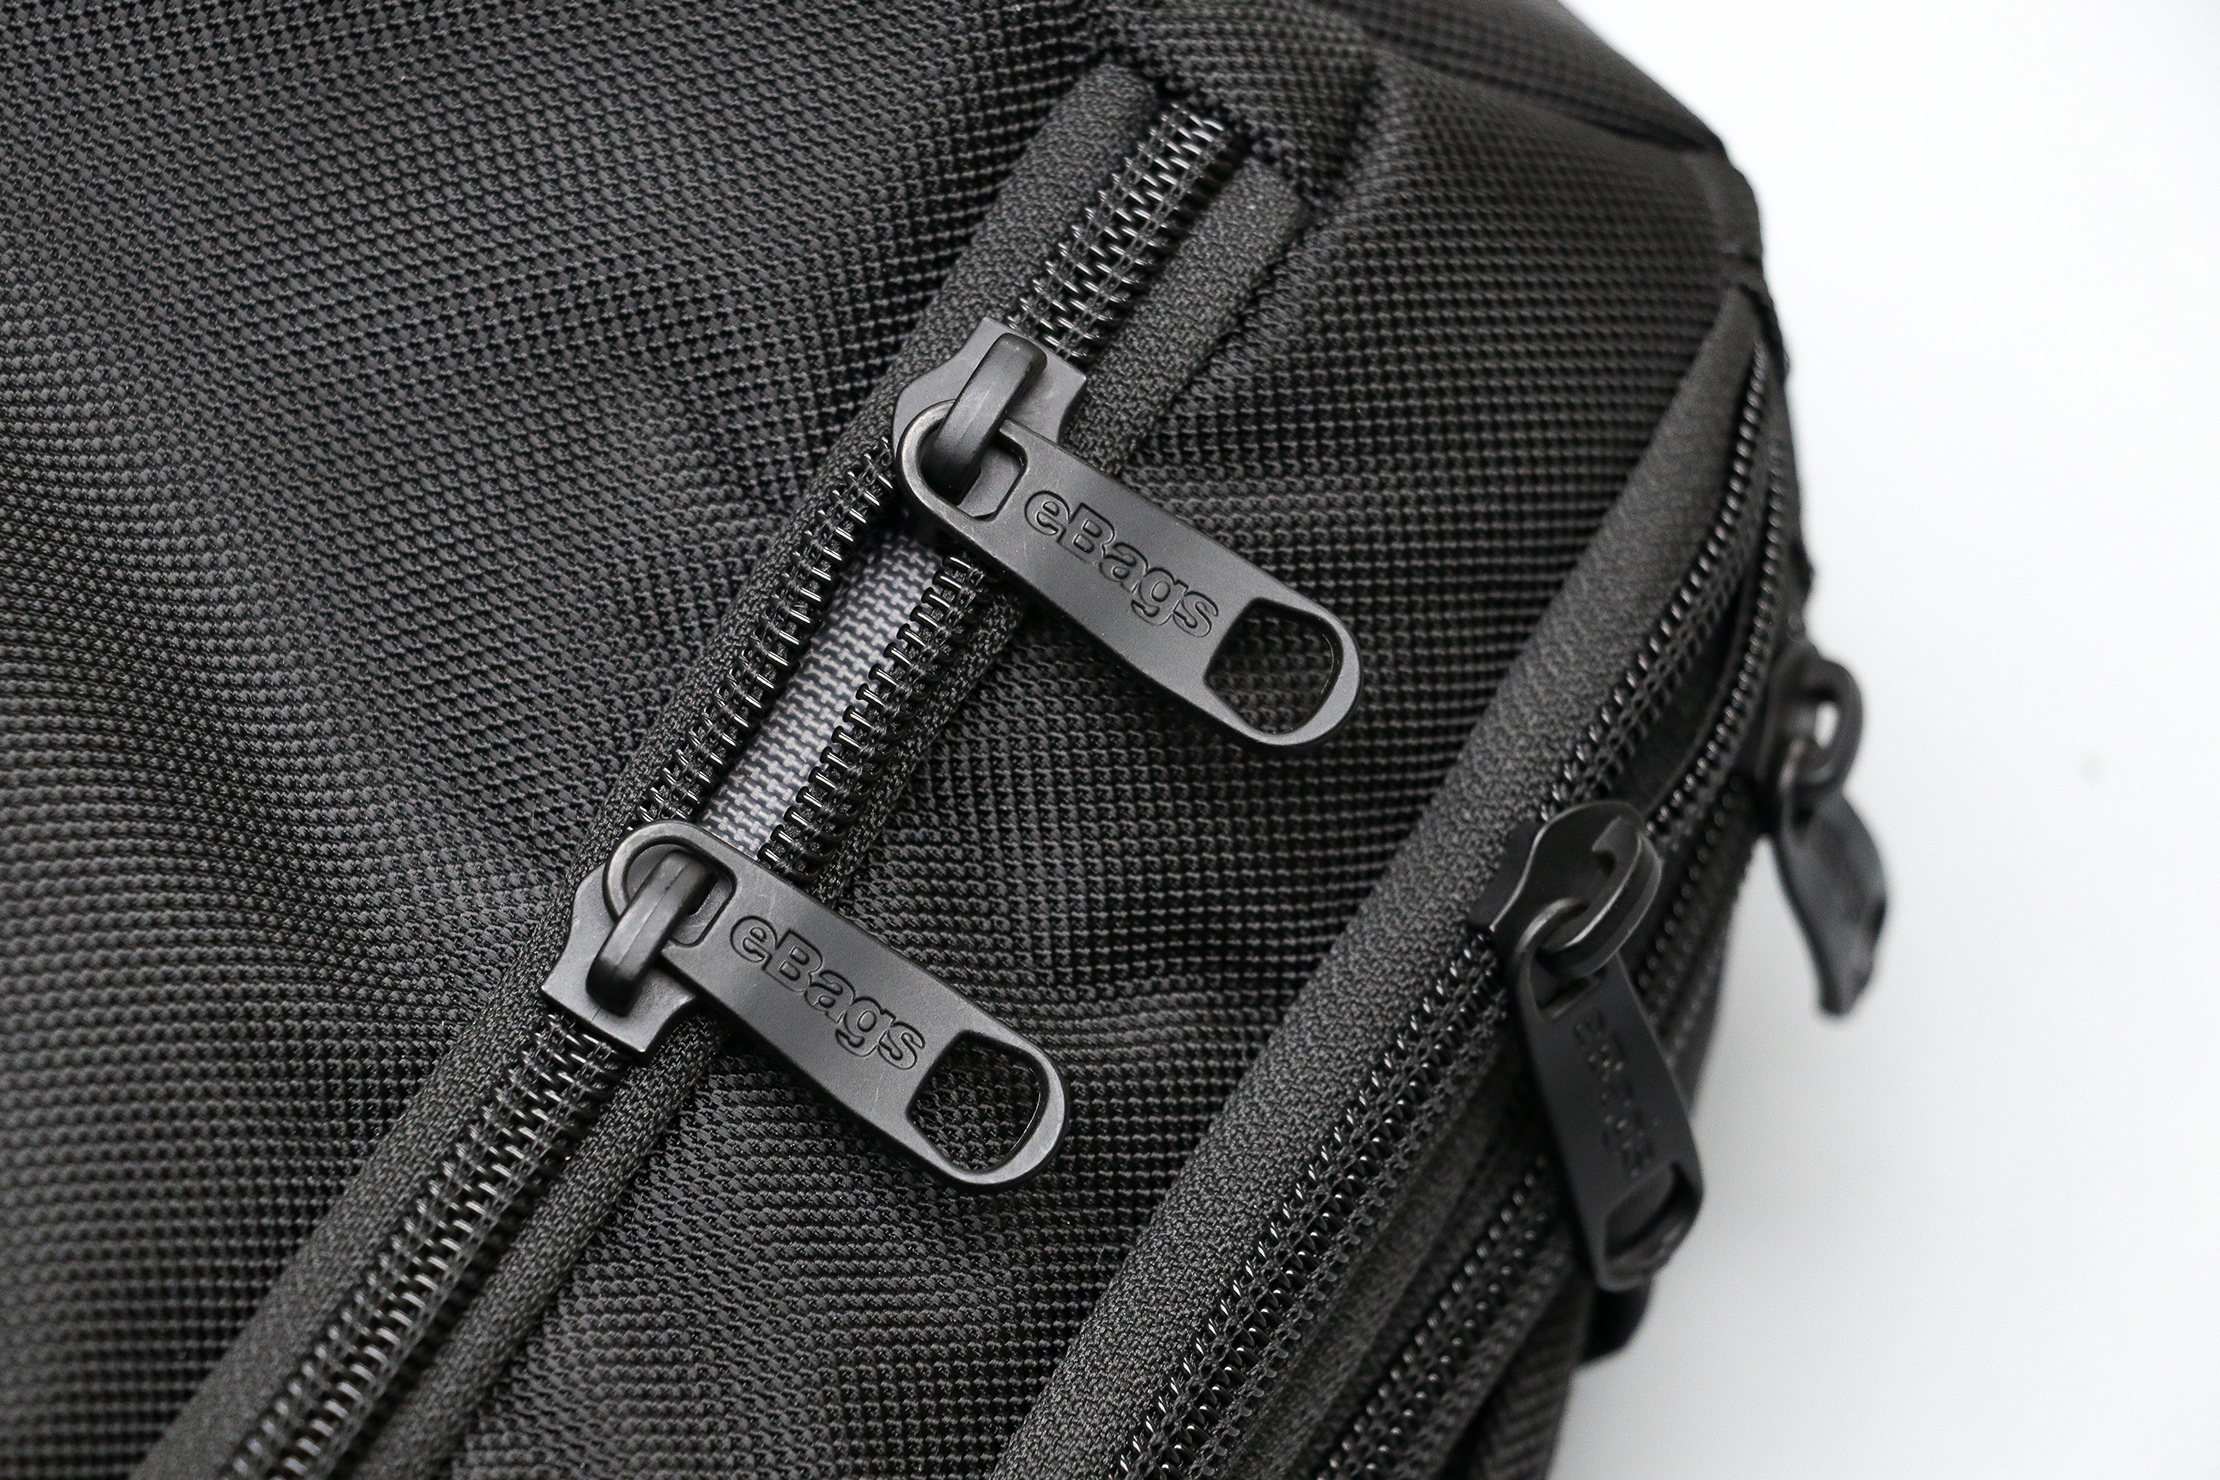 eBags Pro Slim Laptop Backpack Zippers